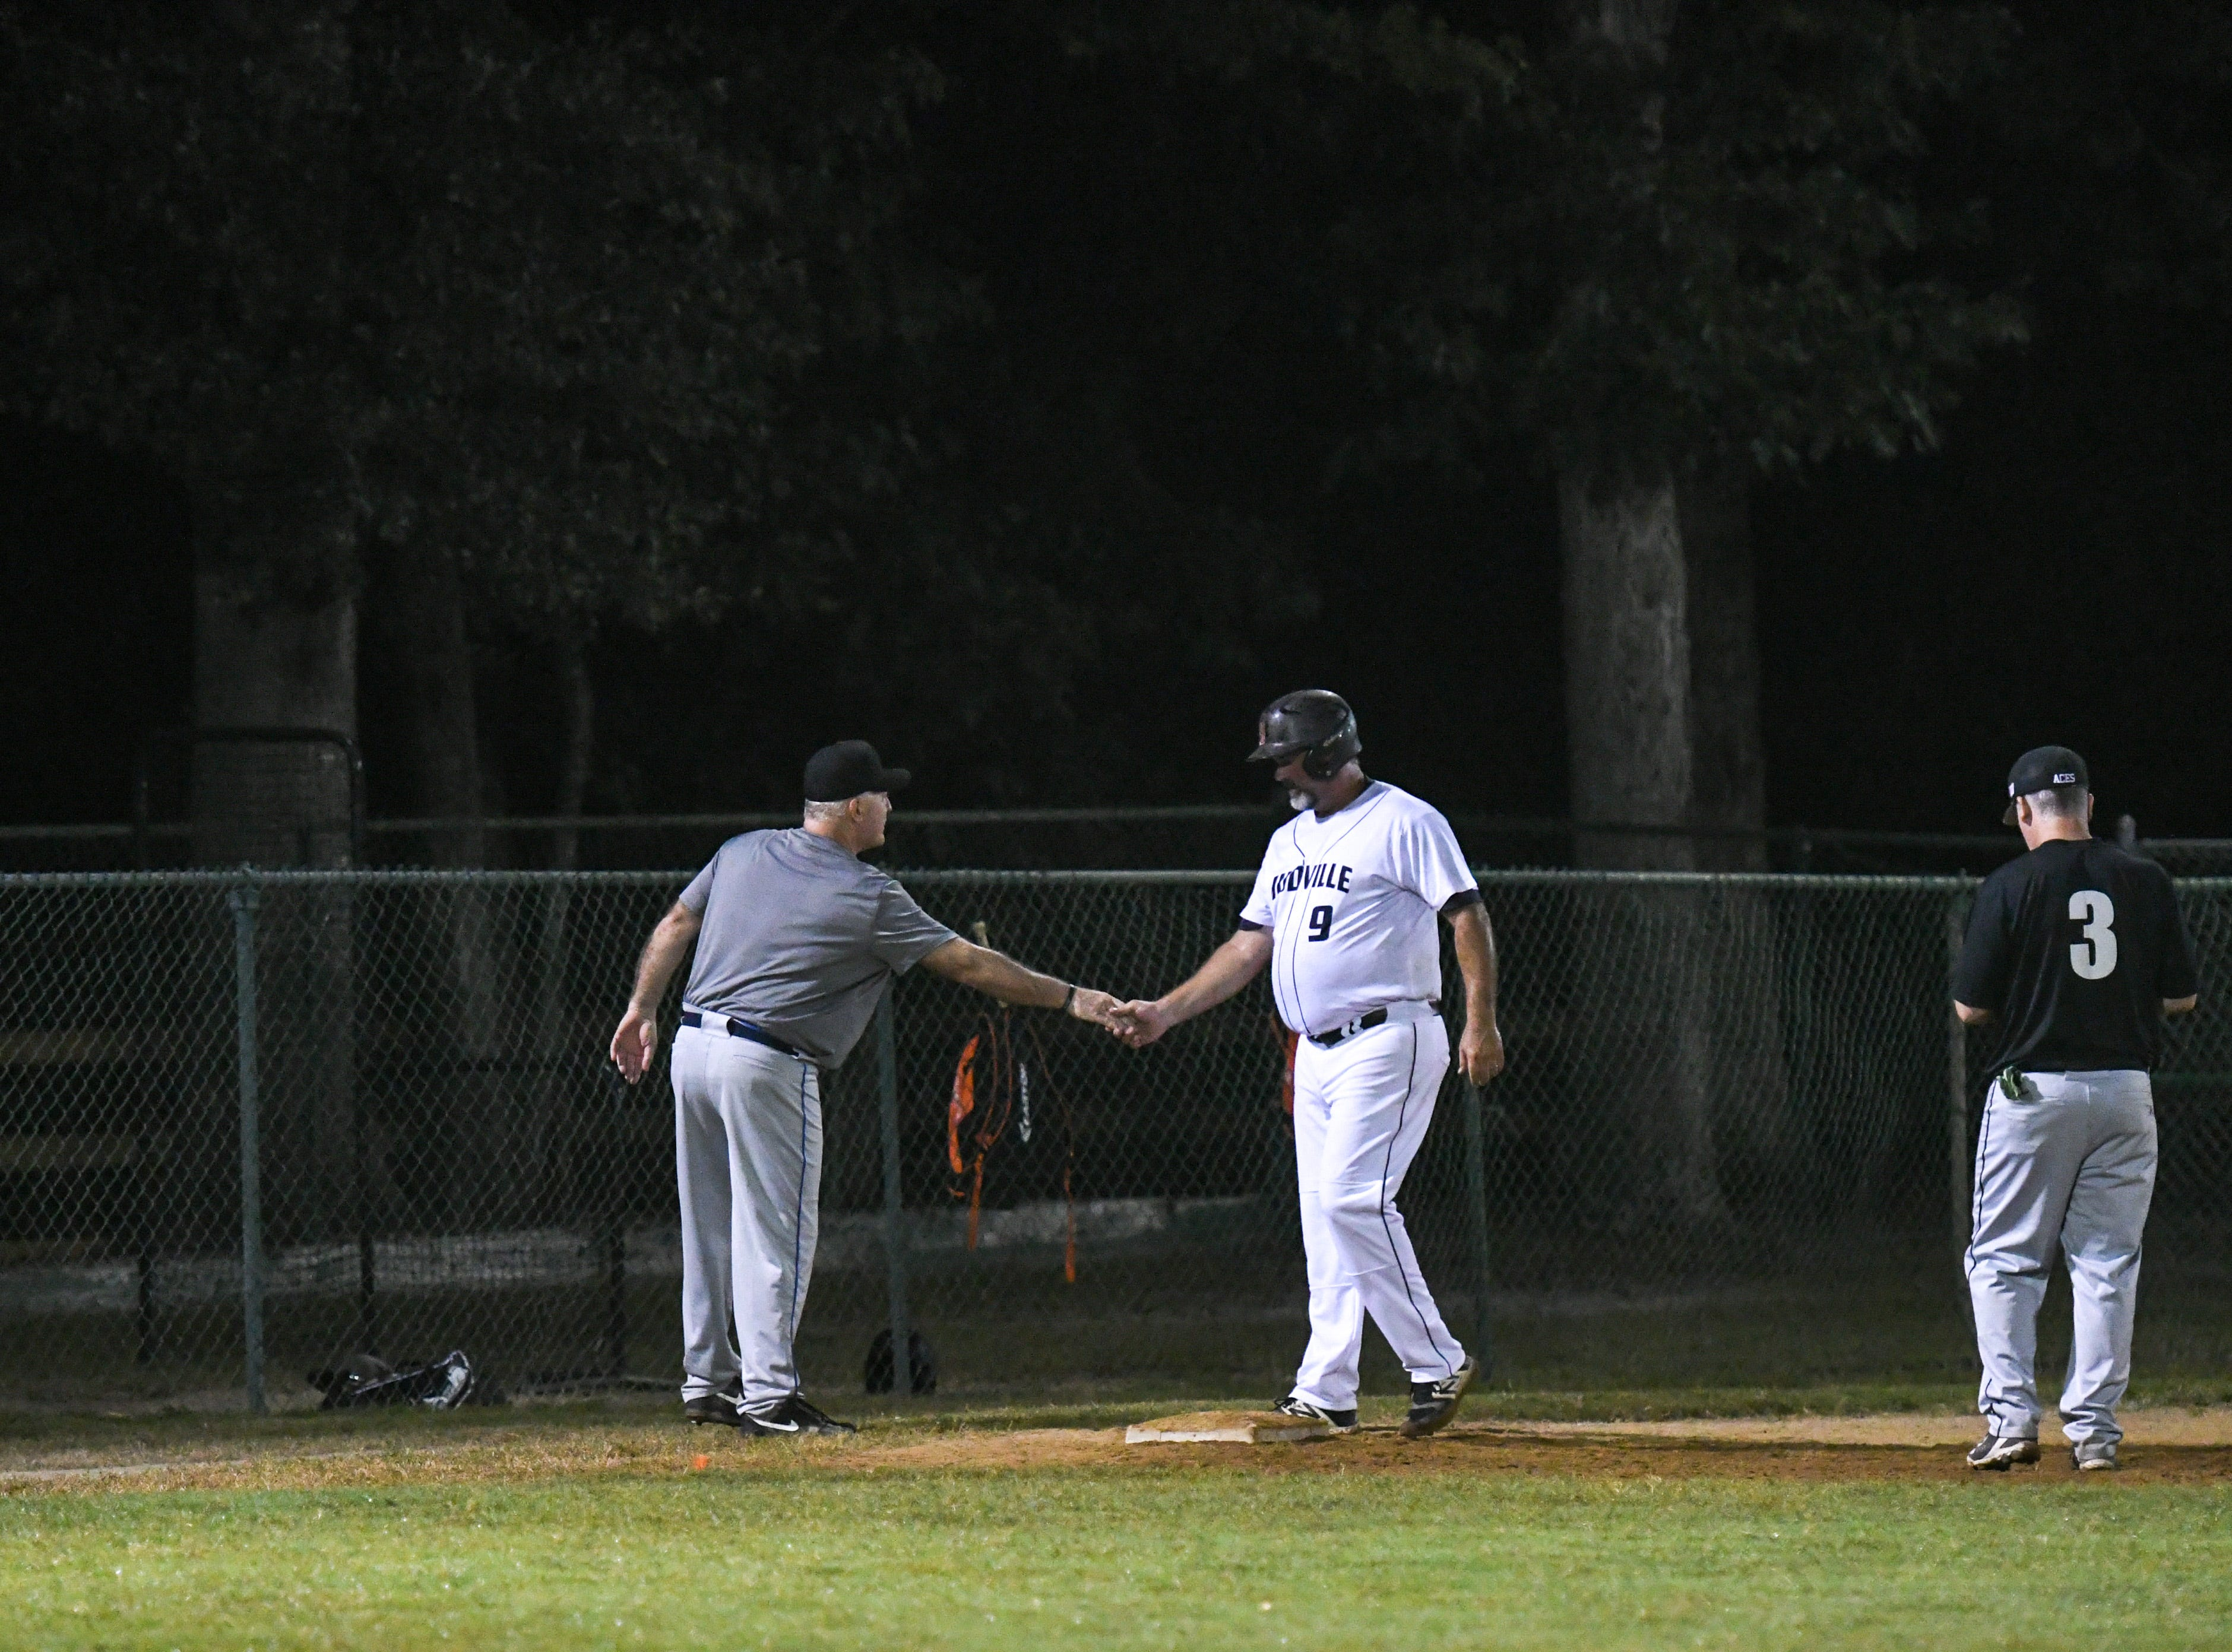 Eric Lauer makes it to third base during a game in the new Ty Cobb Senior Baseball League in Salisbury on Tuesday, Oct 9, 2018.